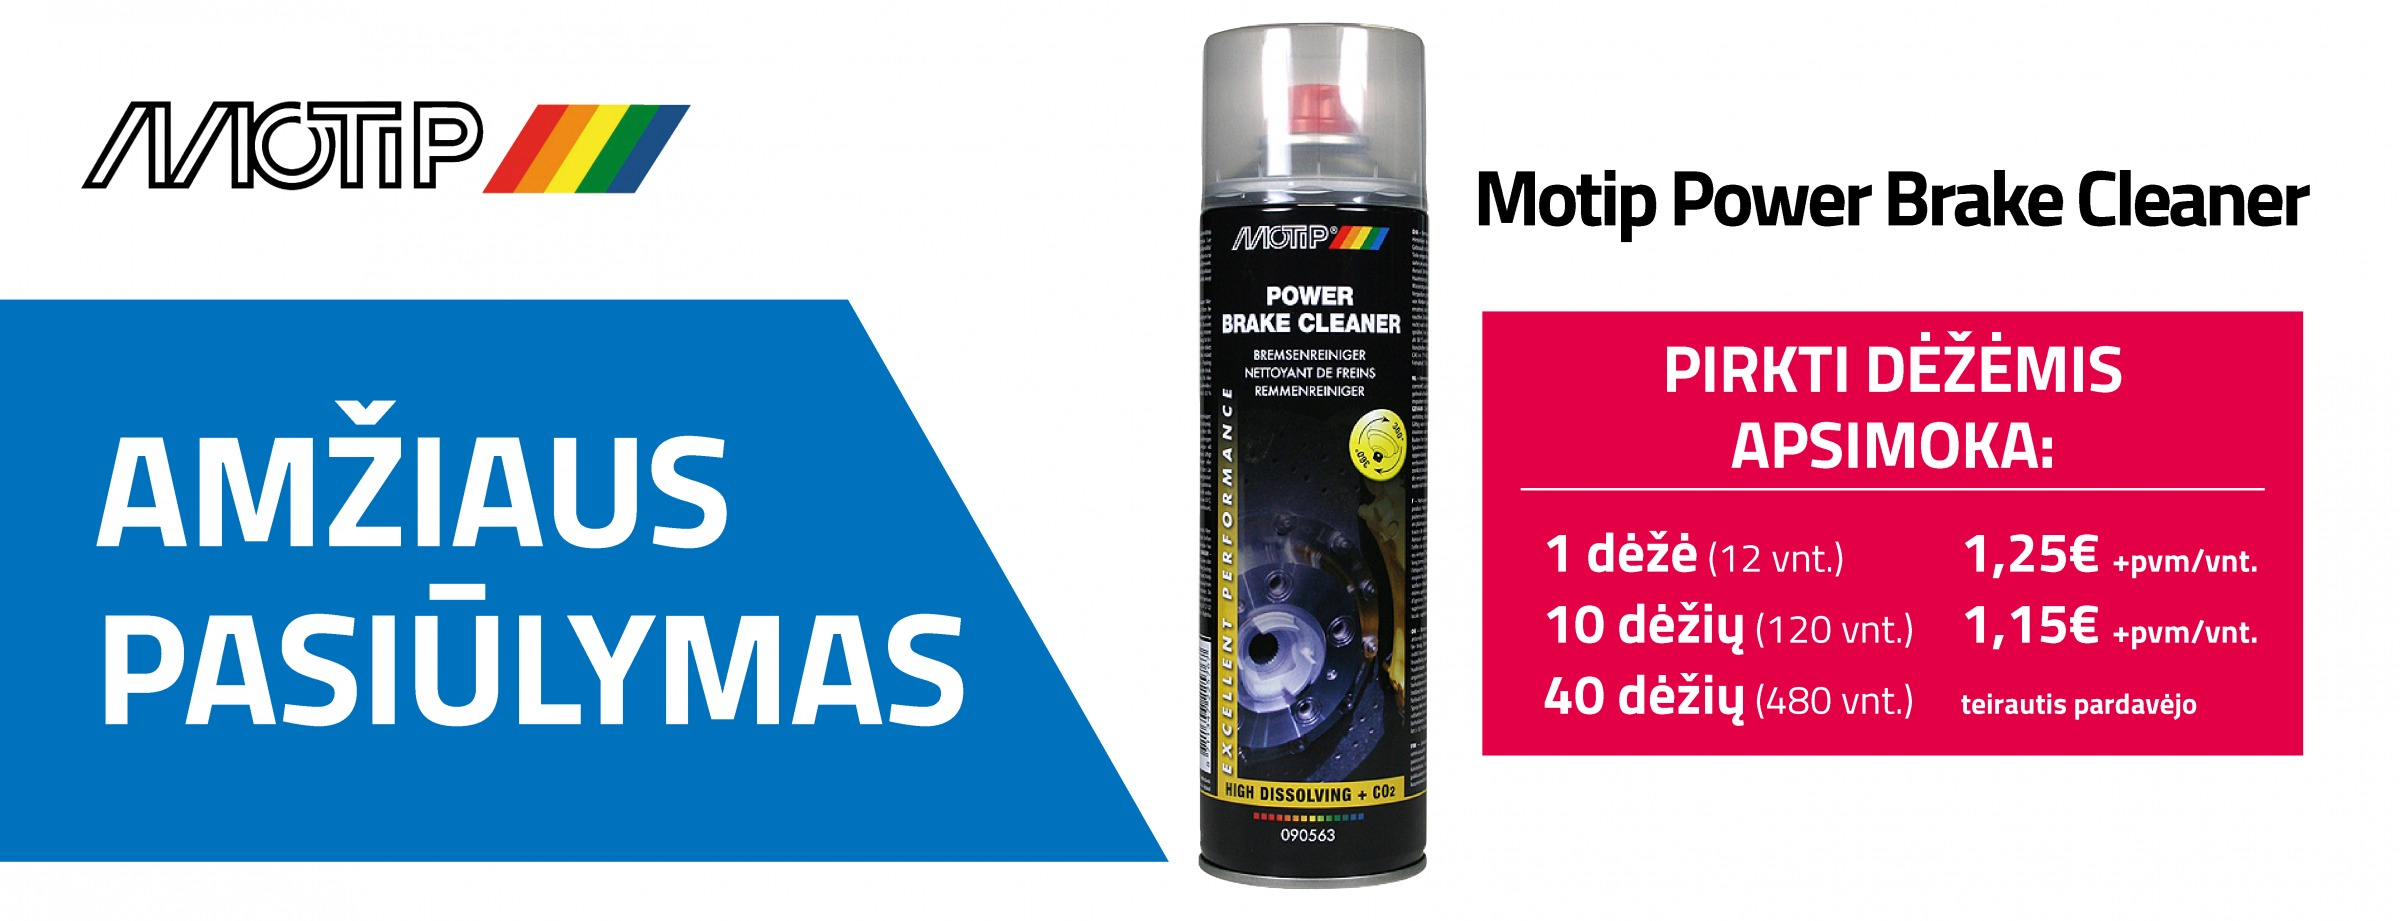 Motip Power Brake Cleaner